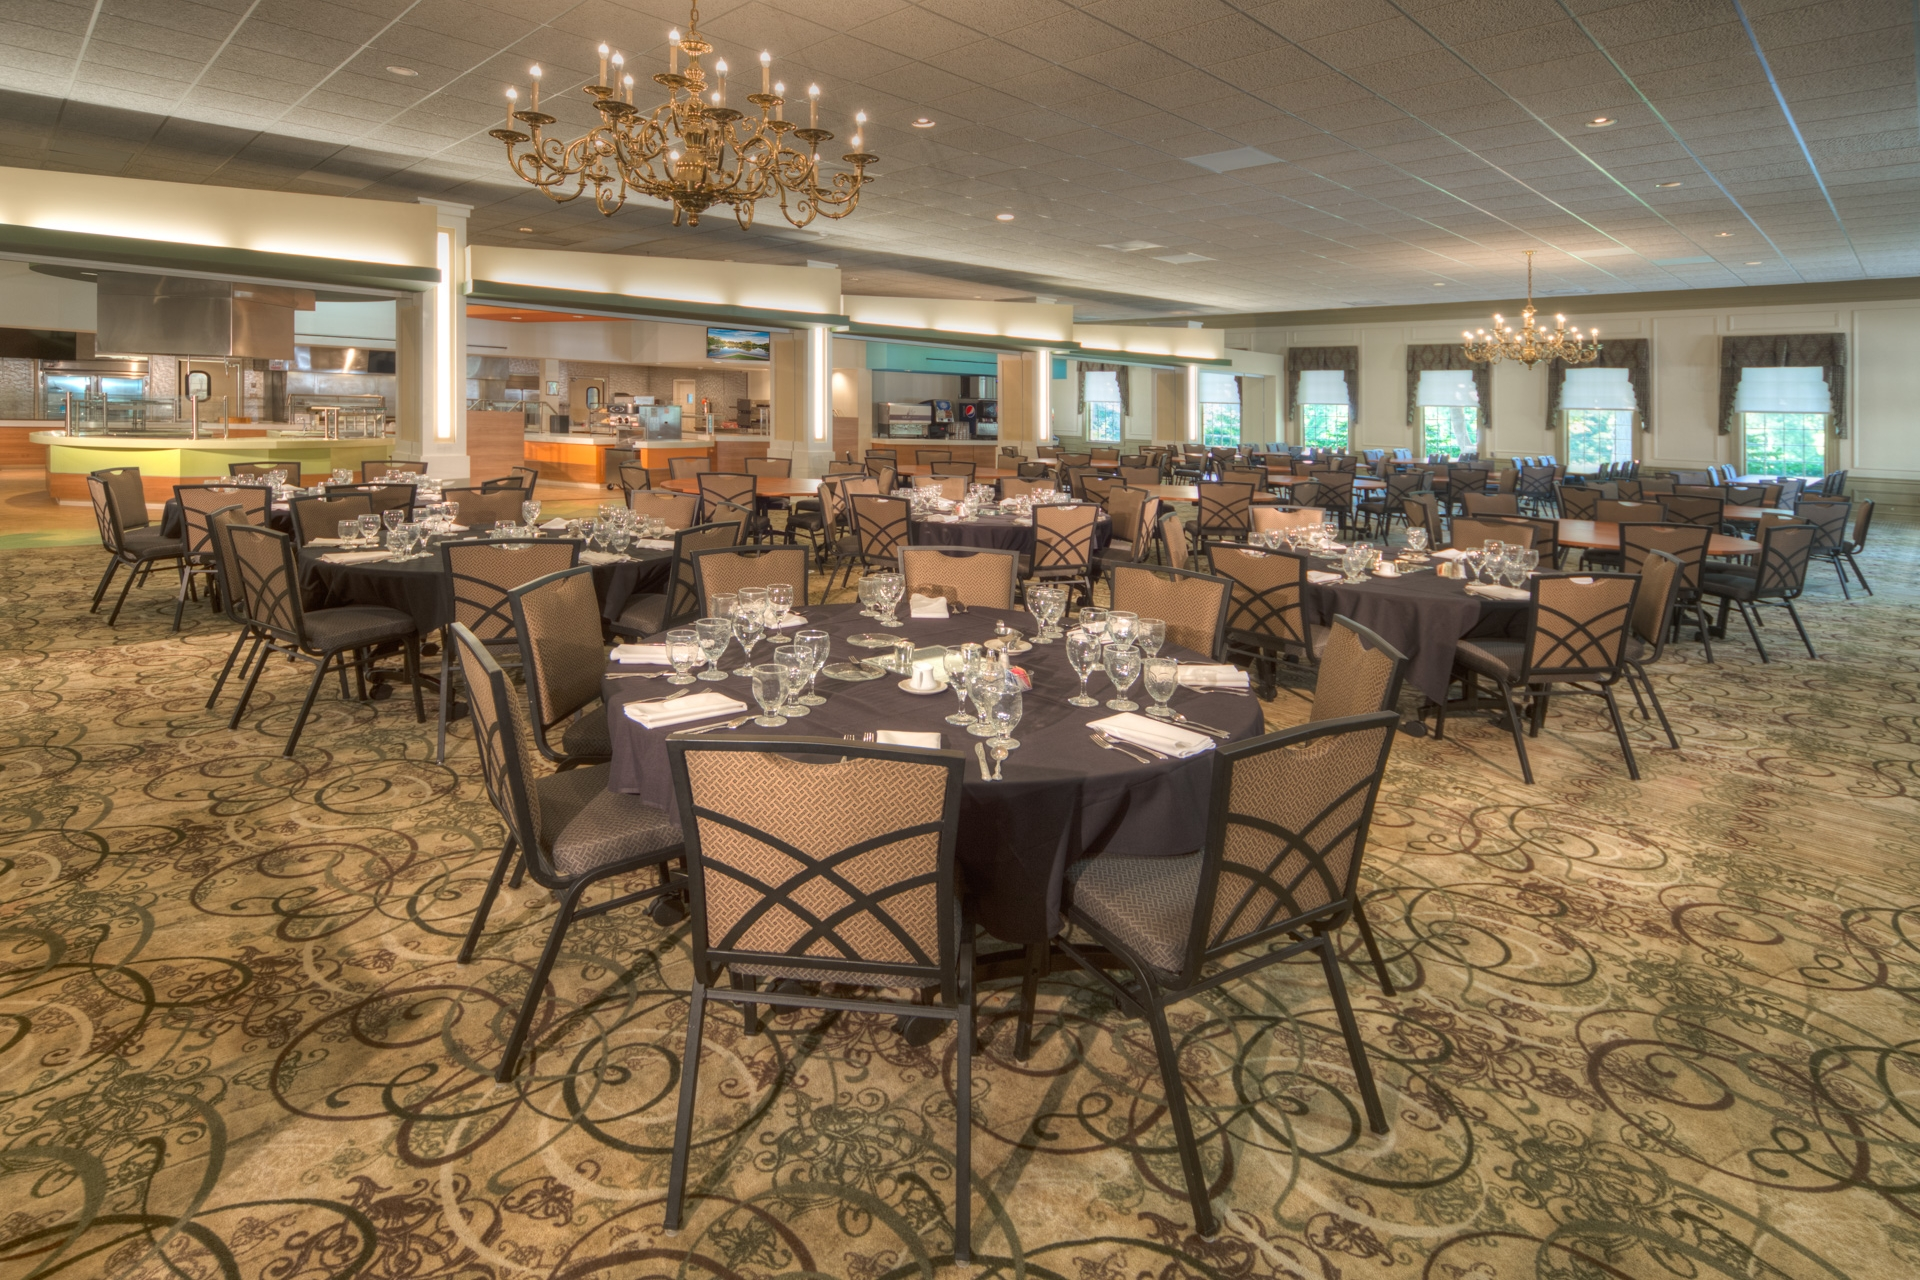 Hanover College | Dining Hall - Hanover, Indiana